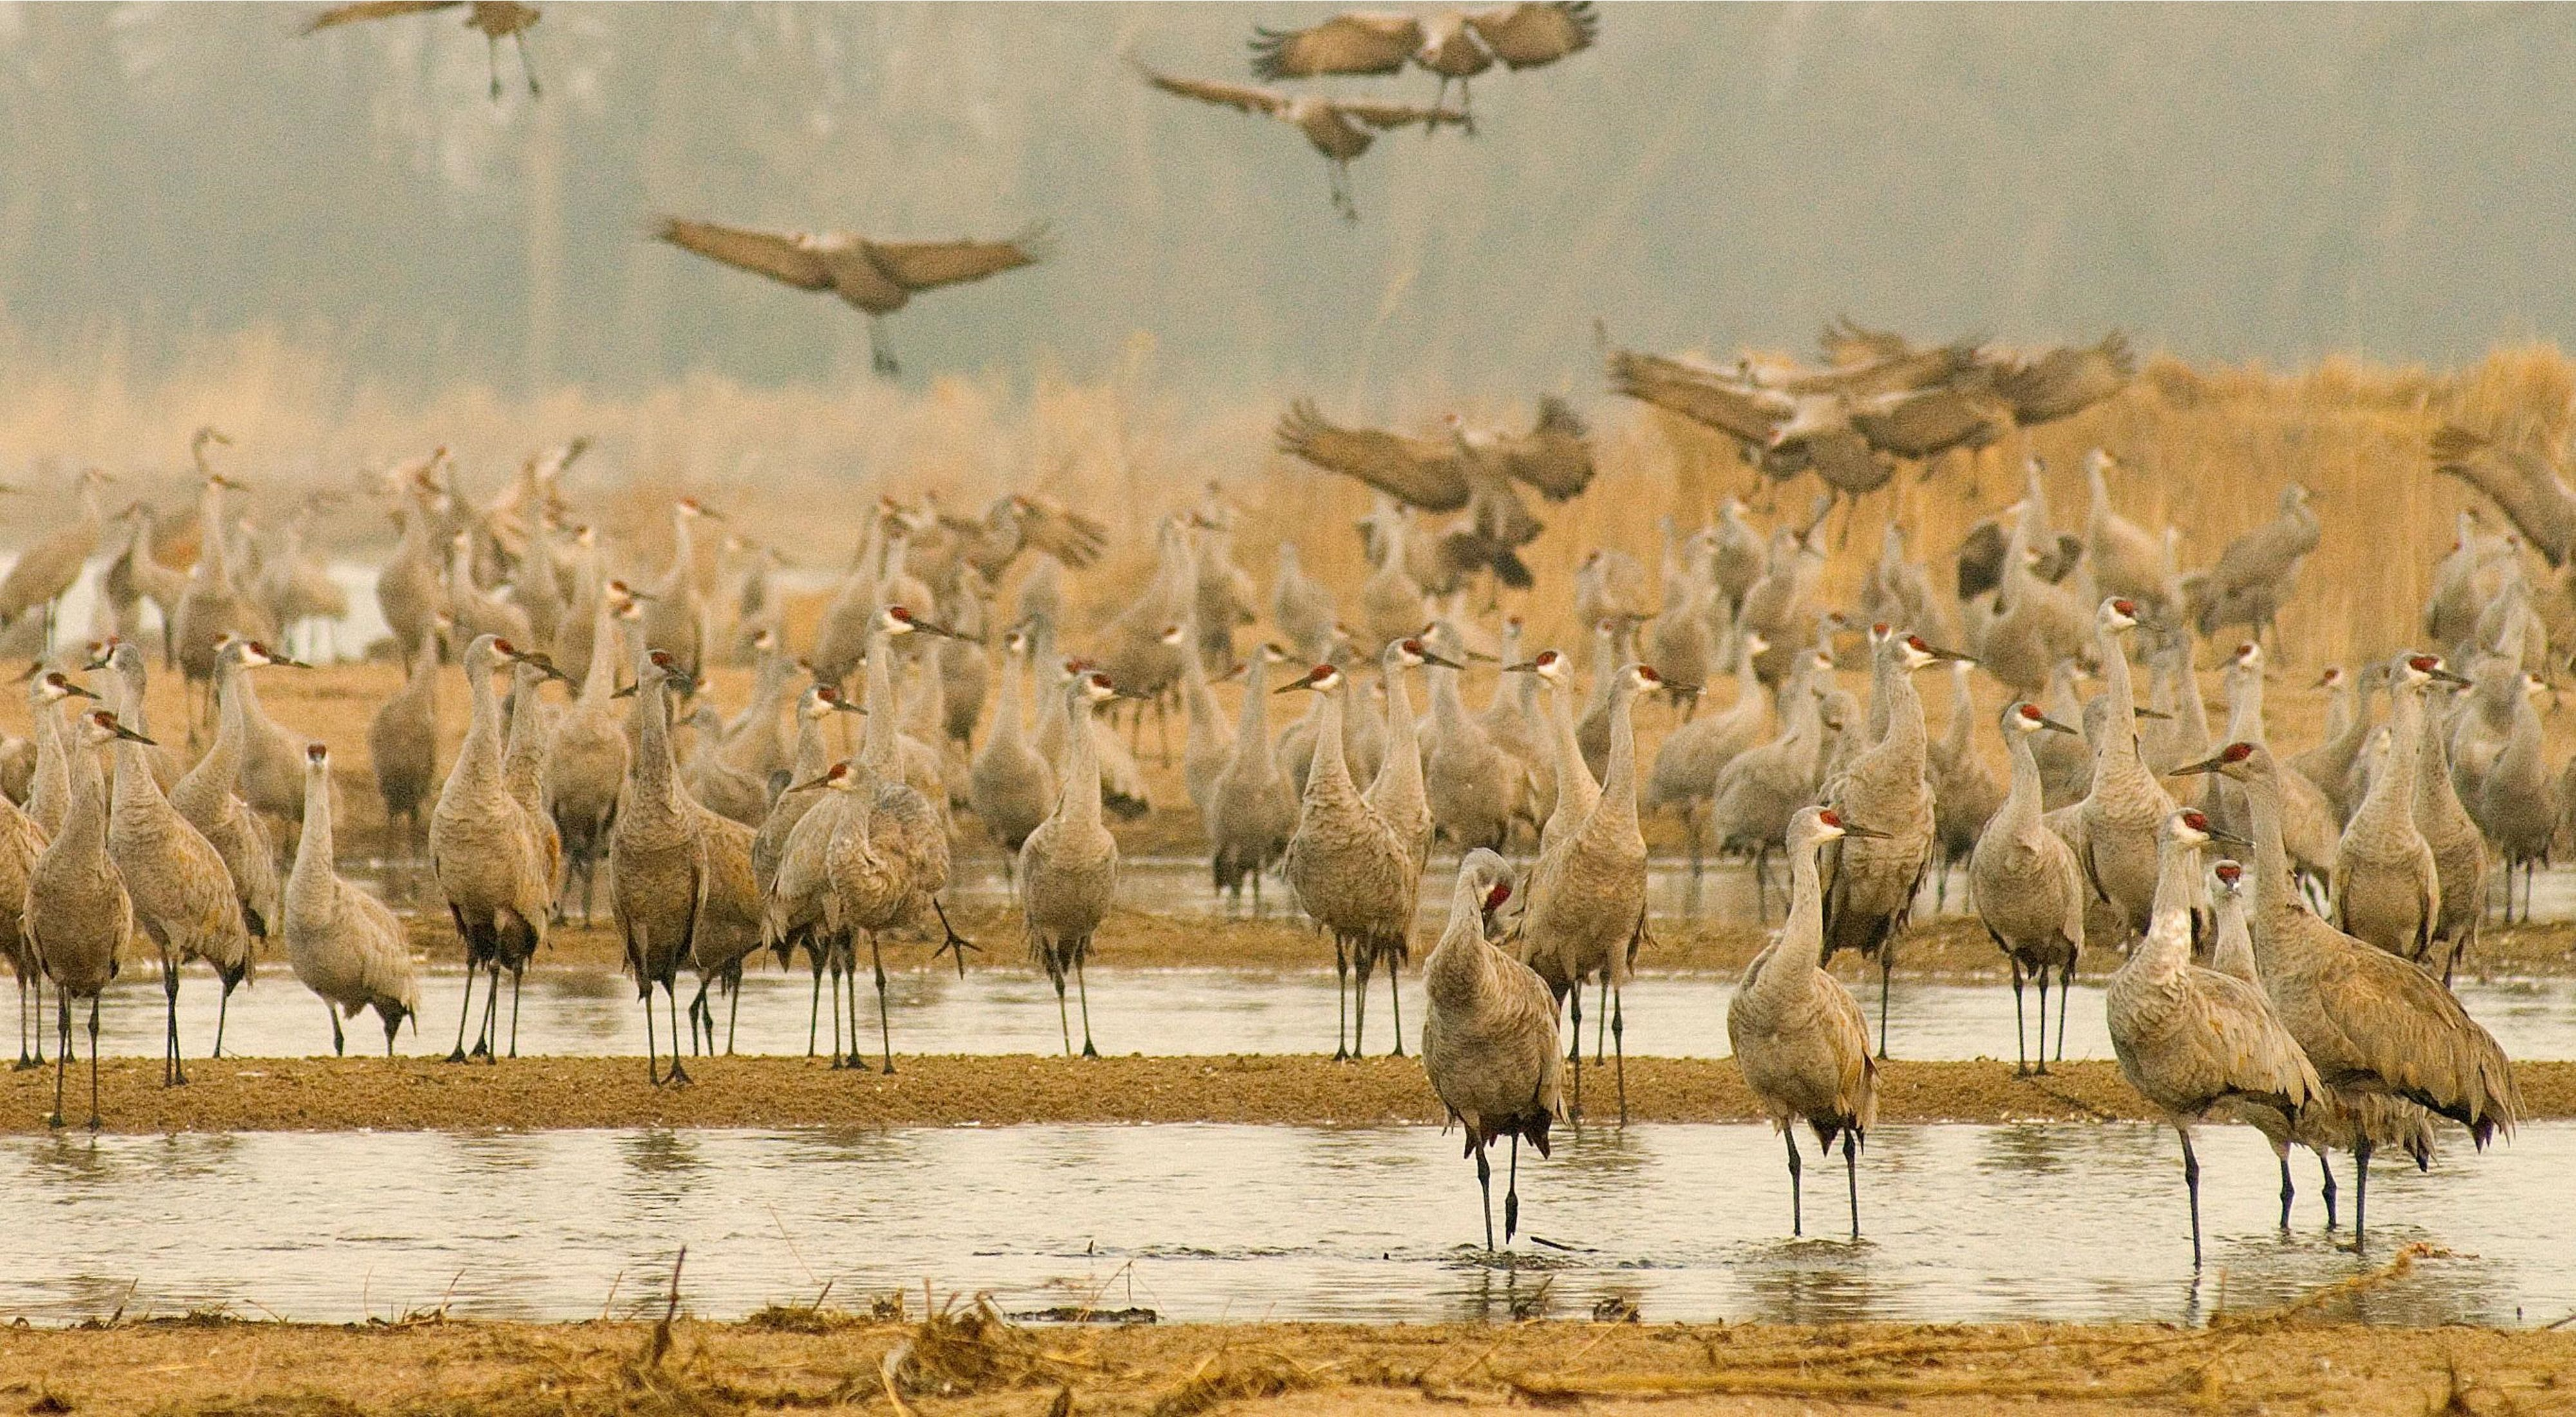 Hundreds of large white sandhill cranes with red head markings wade in shallow water.